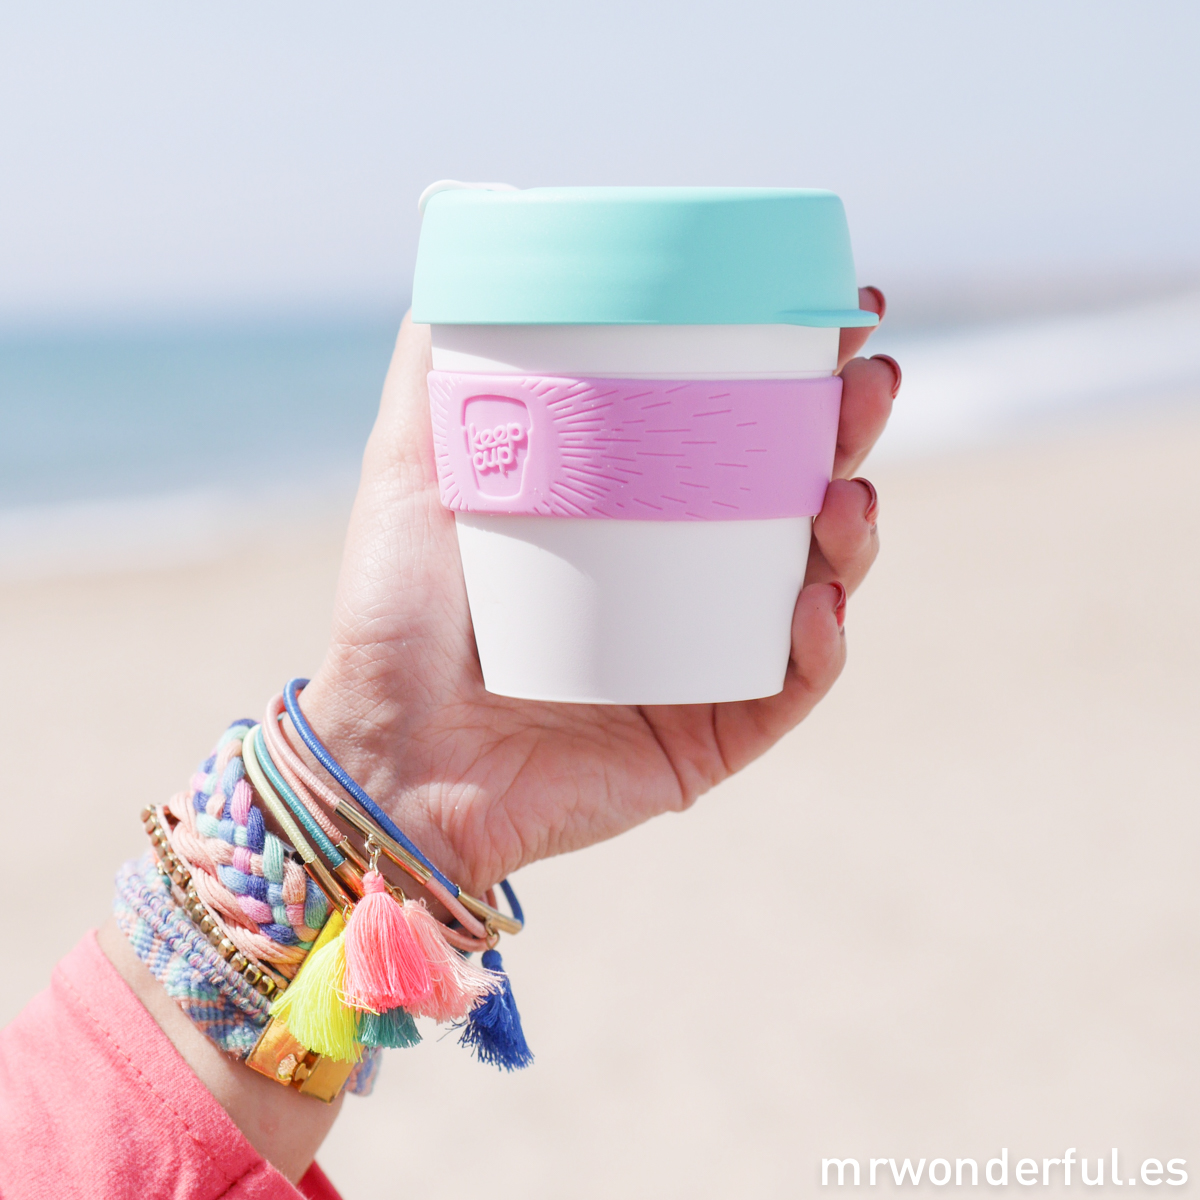 mrwonderful_8436547191338_KEEPCUP-001_Keepcup-Madrid_12